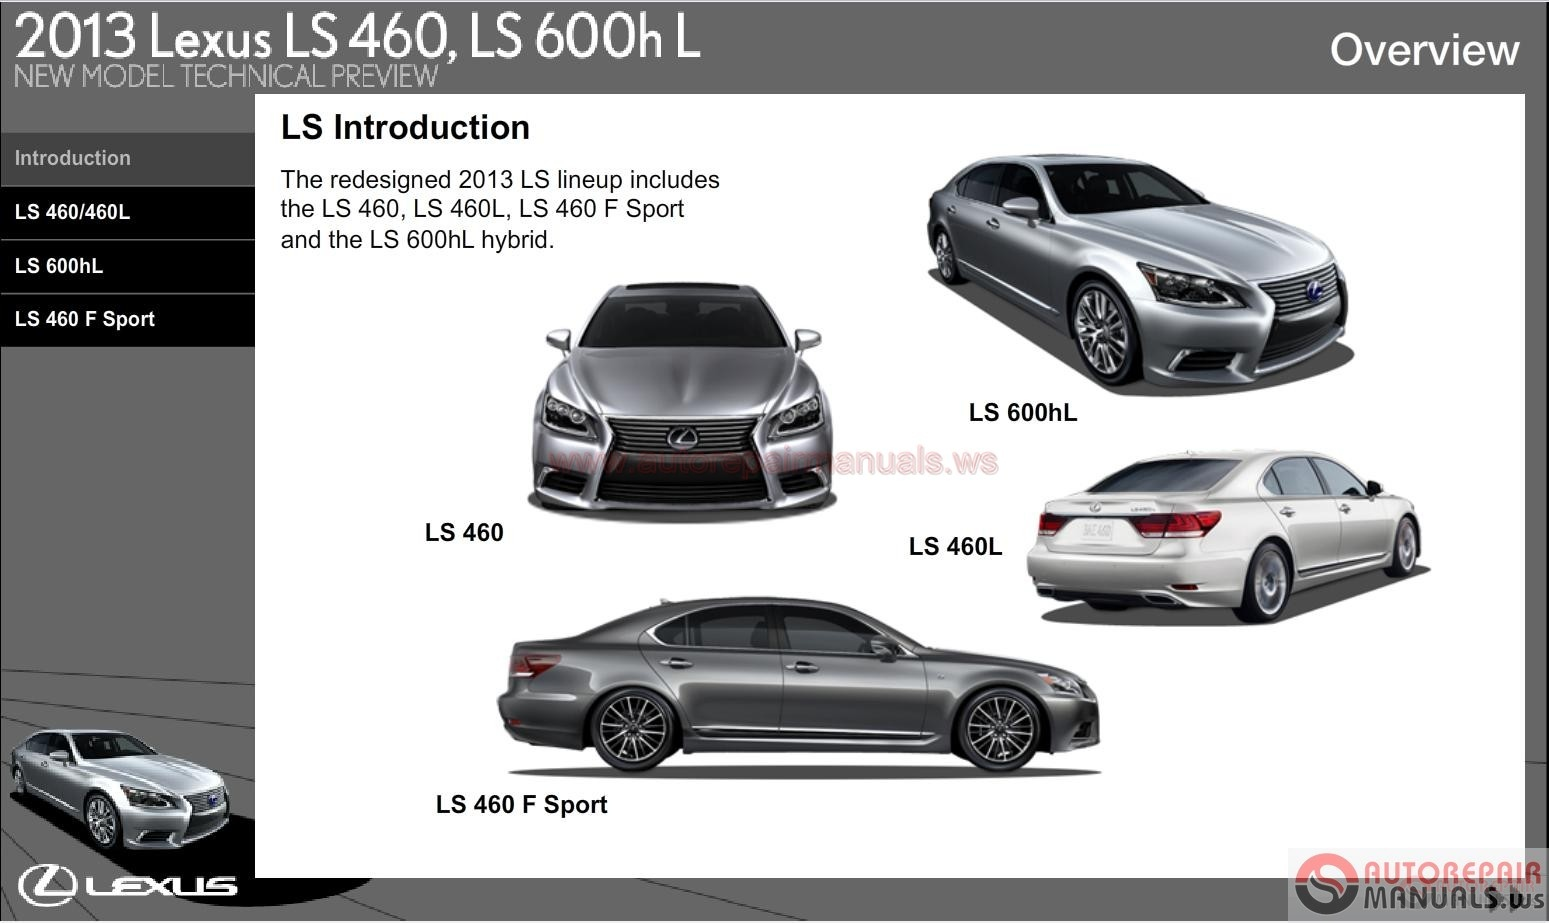 Lexus Ls460 Ls460hl New Model Technical Preview